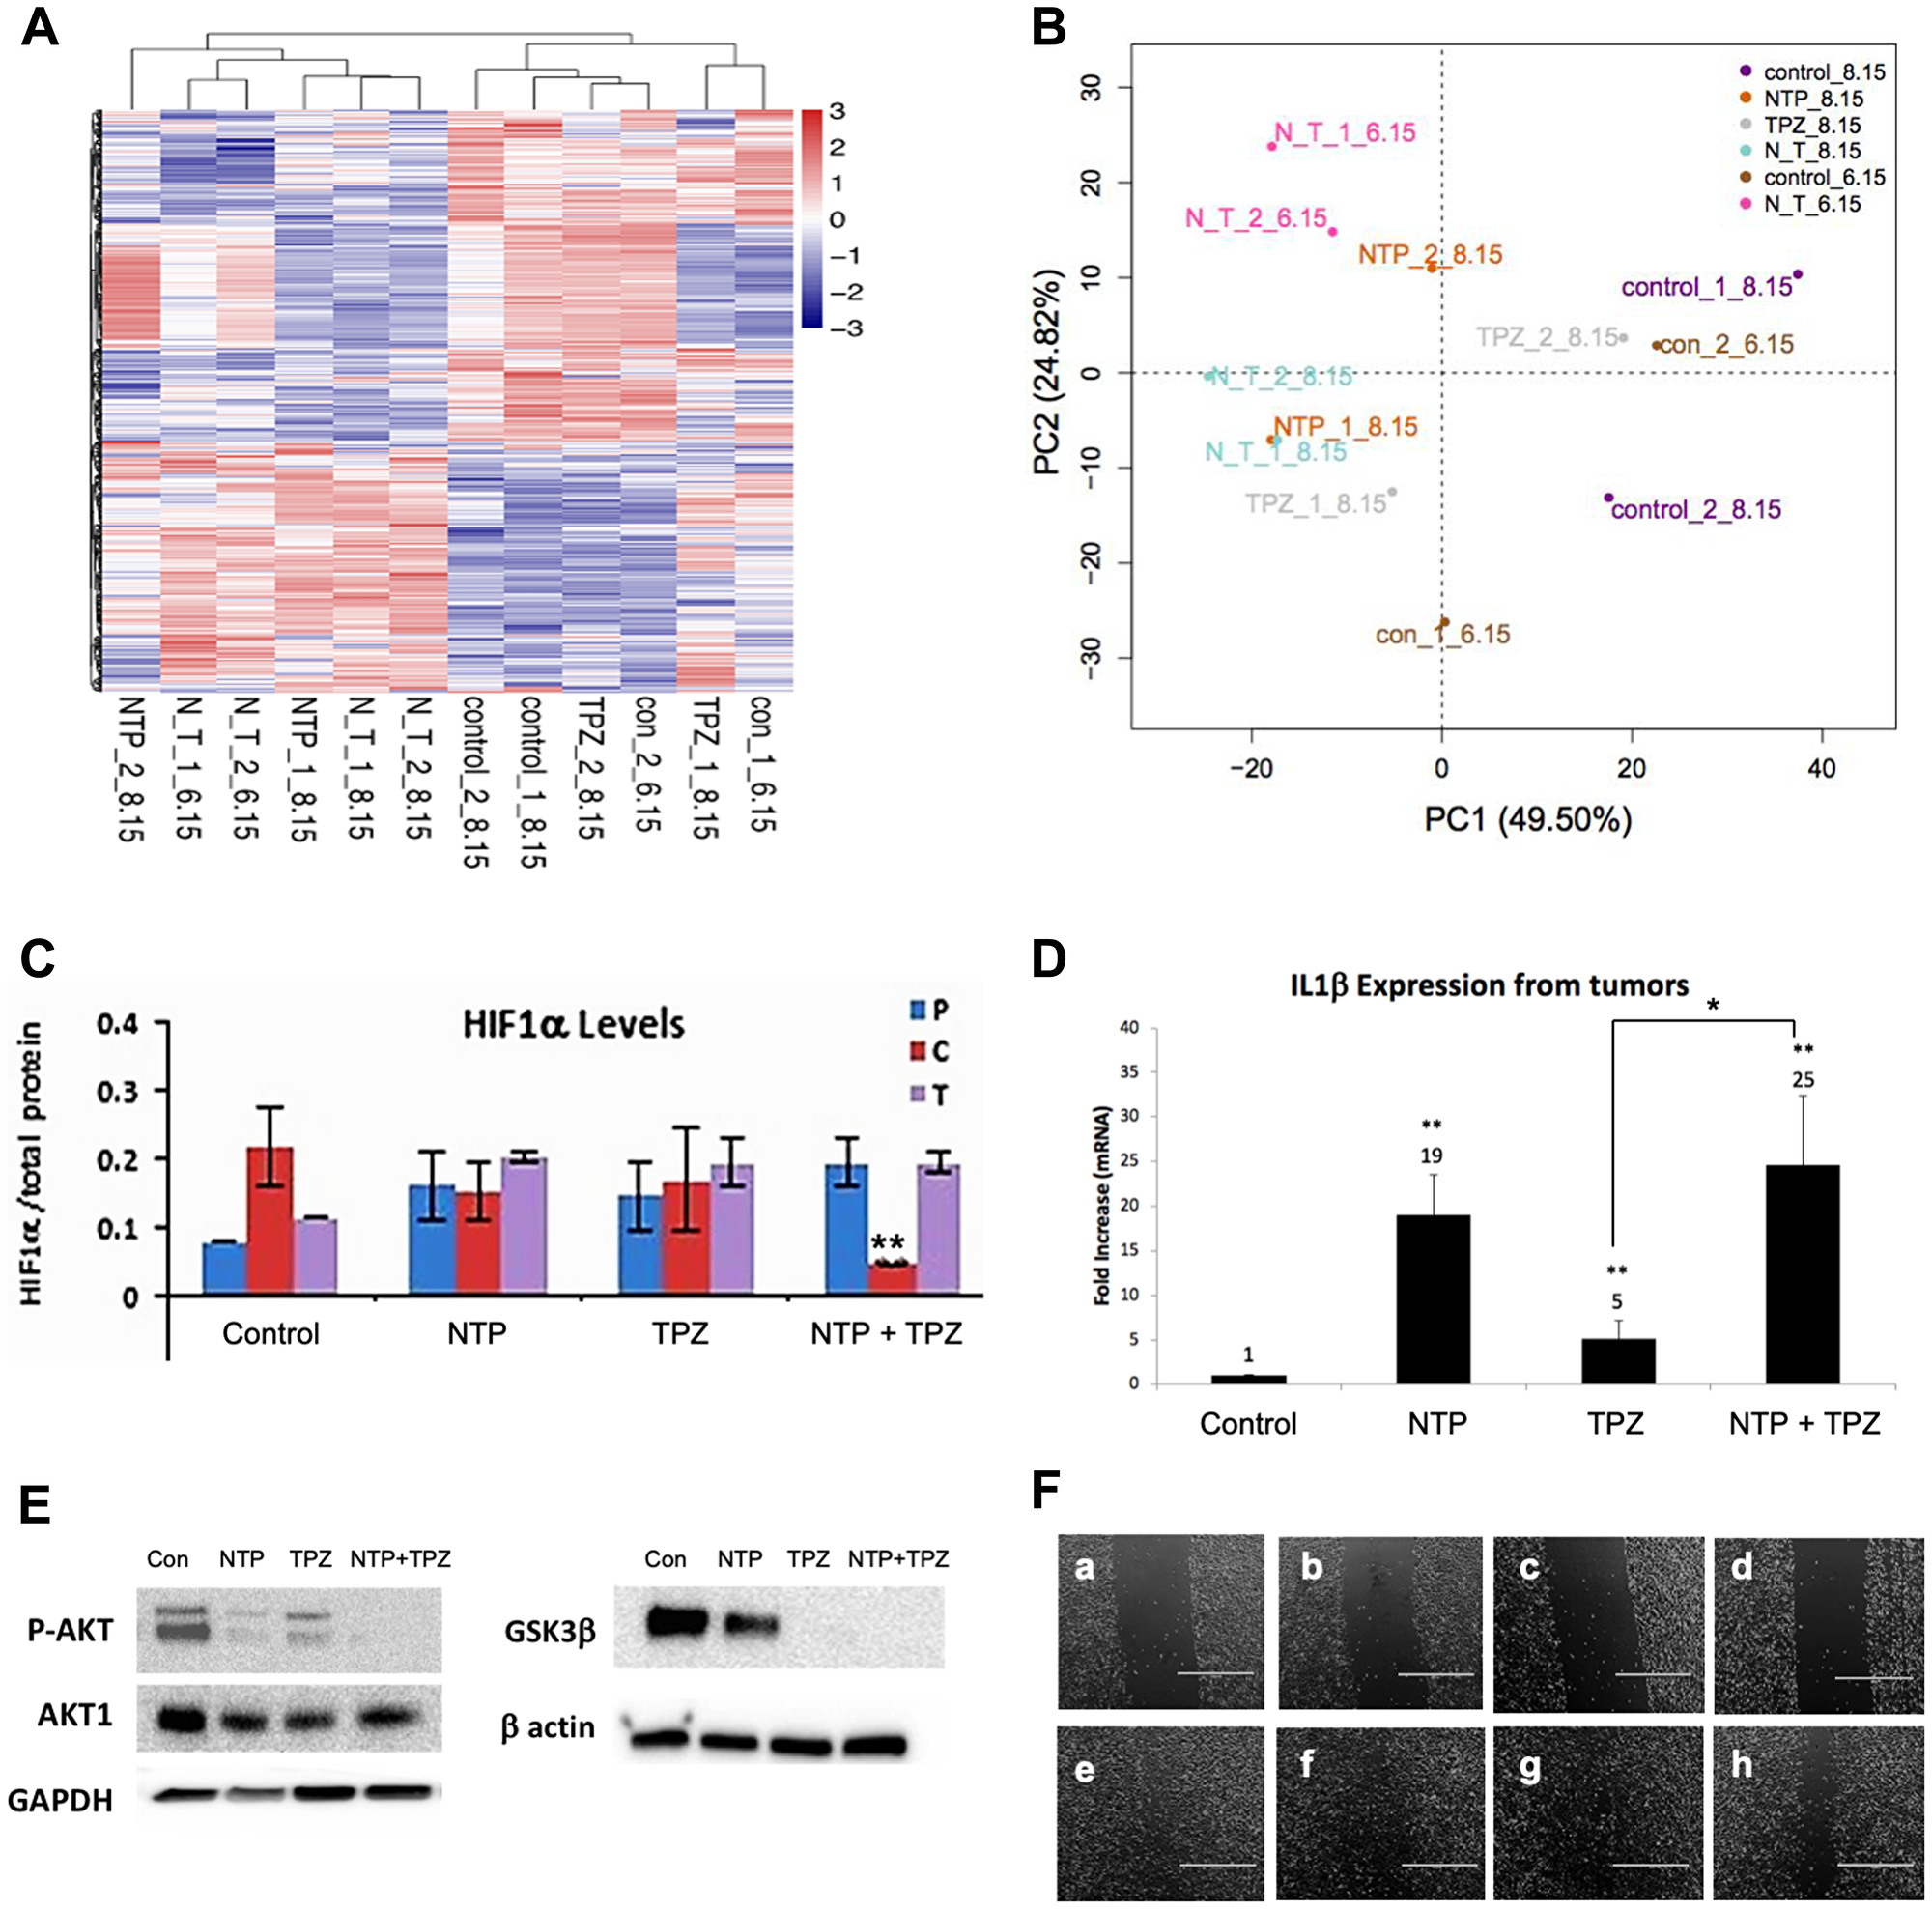 Gene expression changes following NTP+TPZ treatment.